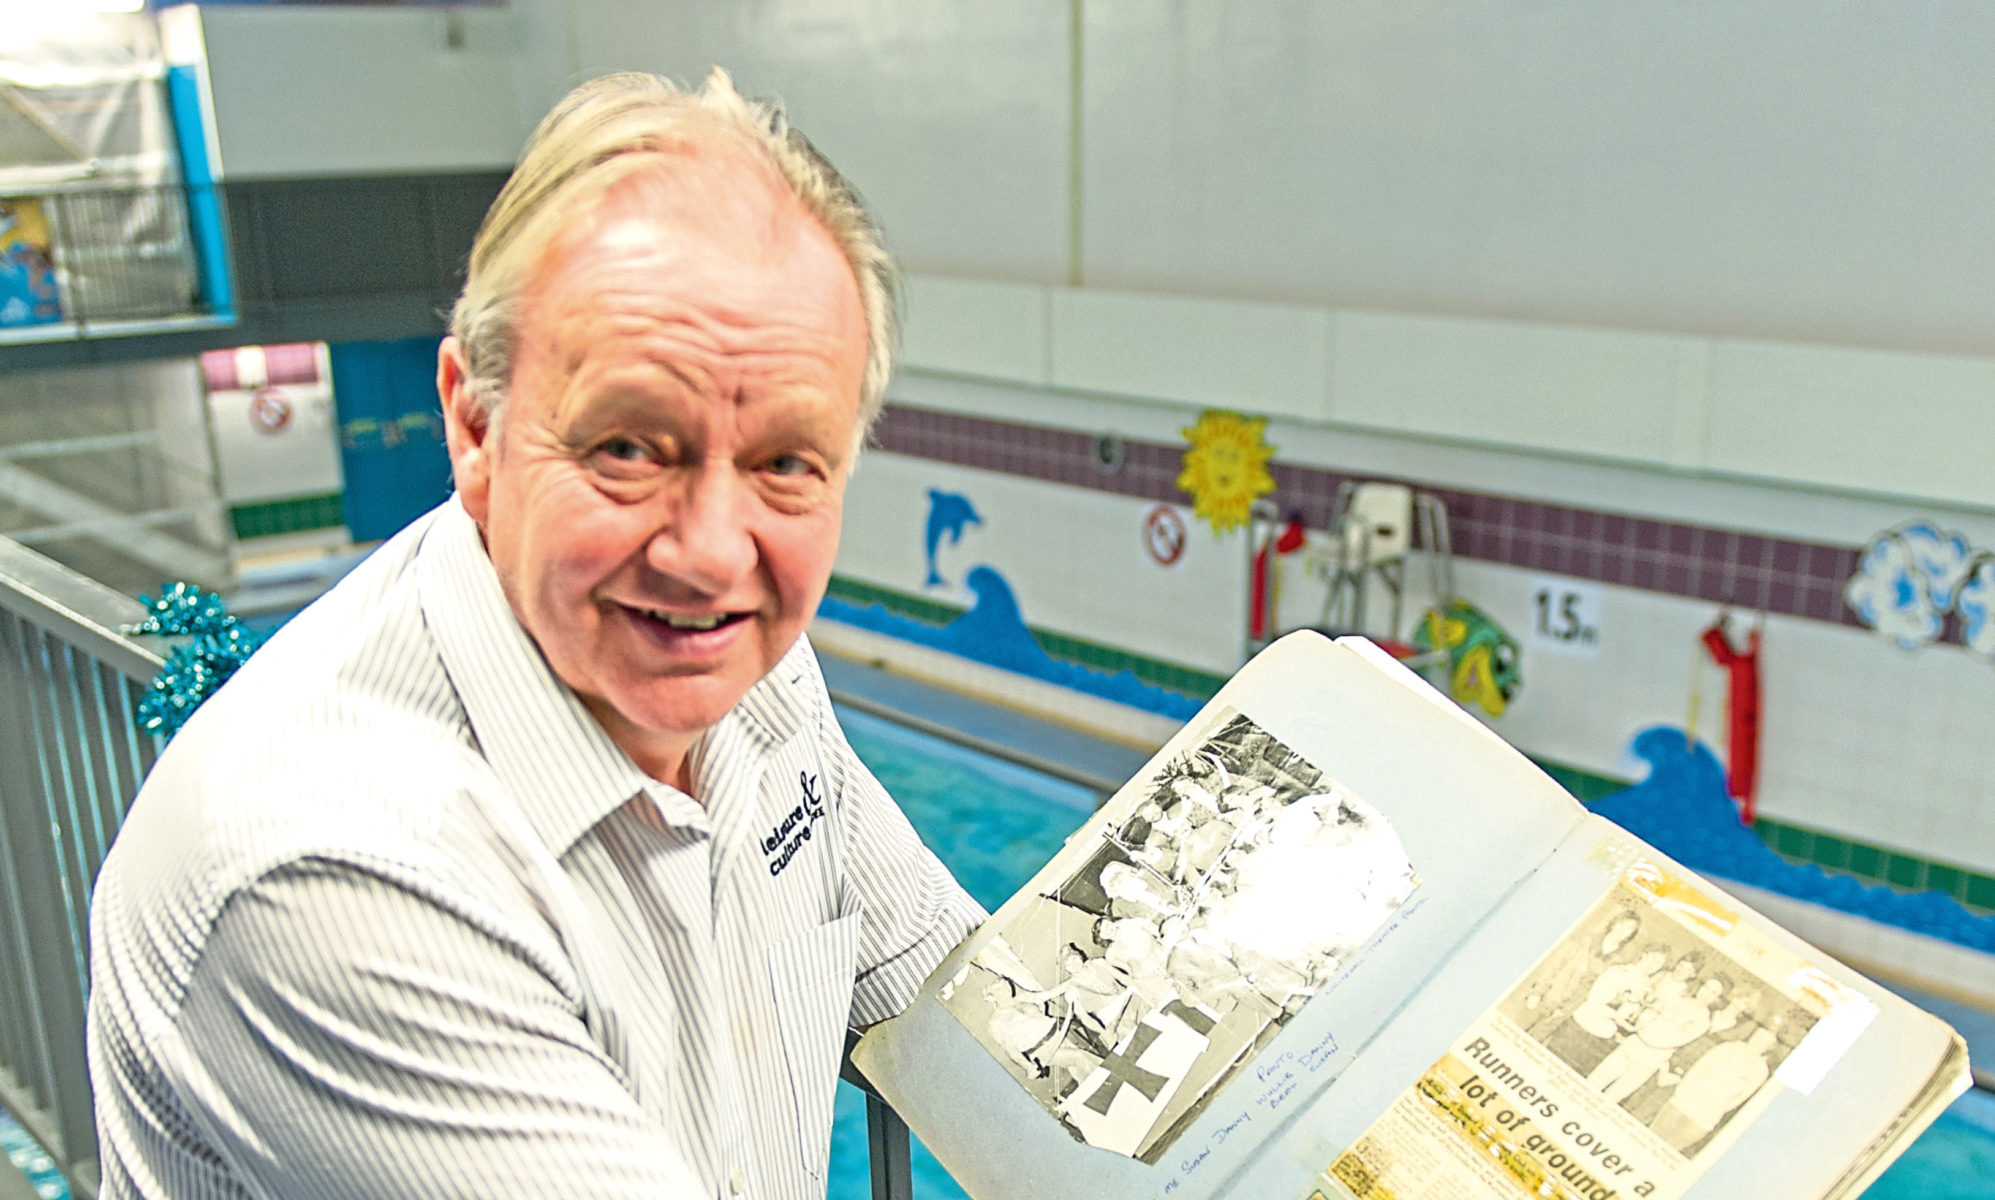 Davie with the scrapbooks, which feature pictures and articles from over the years